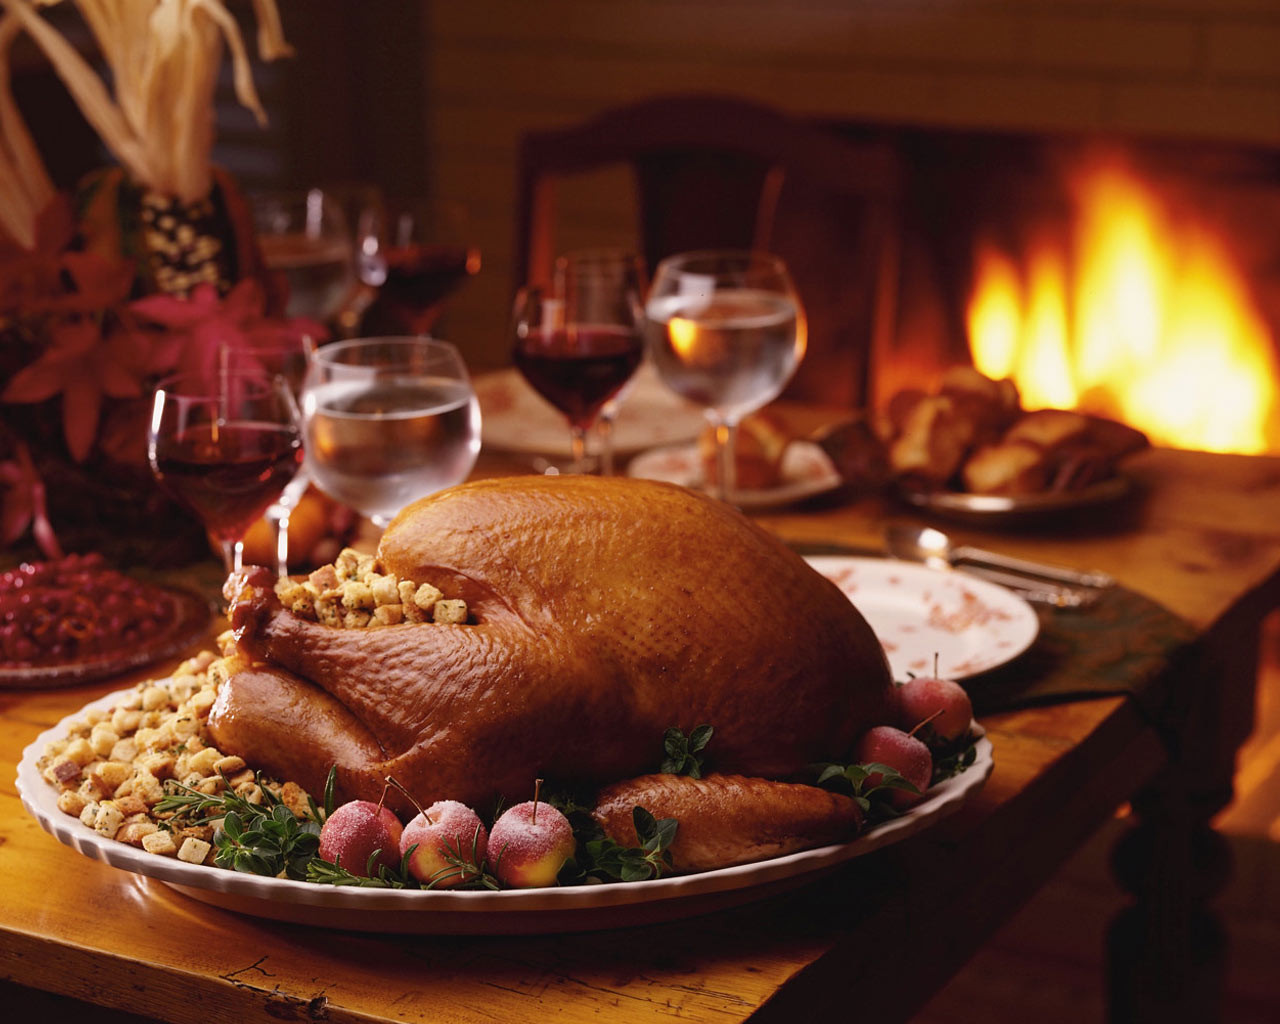 Best Cooked Turkey For Thanksgiving  How To Make the Perfect Thanksgiving Day Turkey Pursuitist